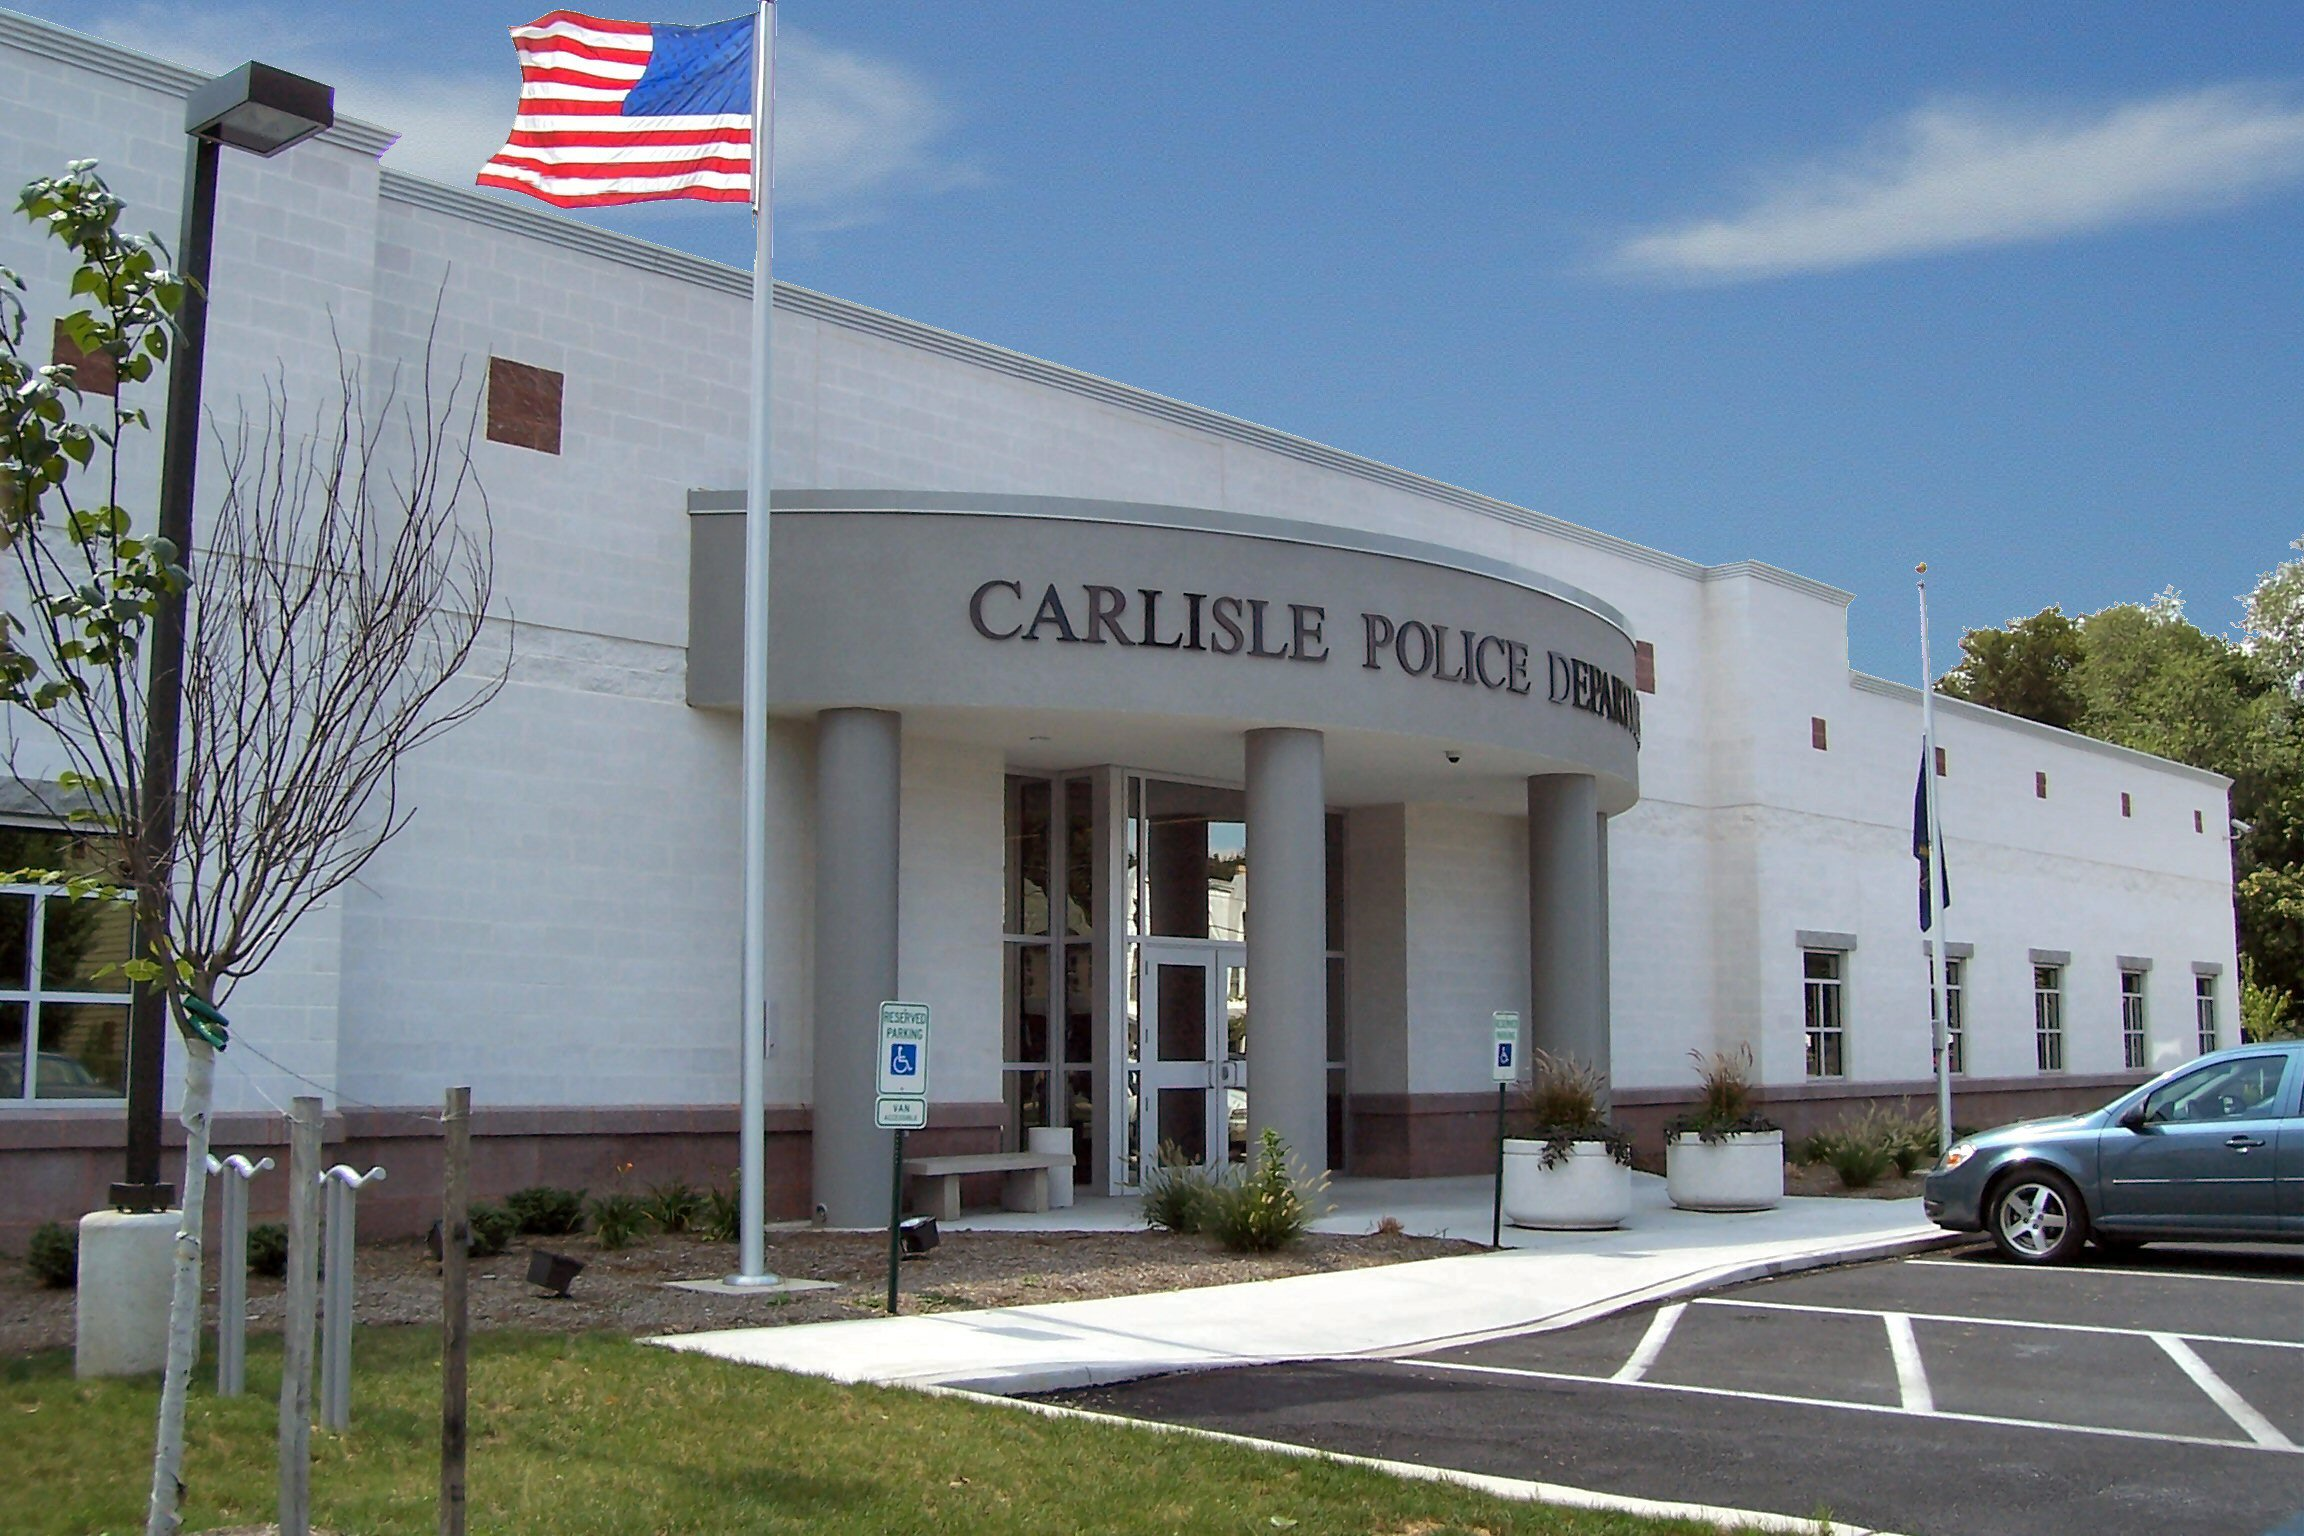 Carlisle Police Department